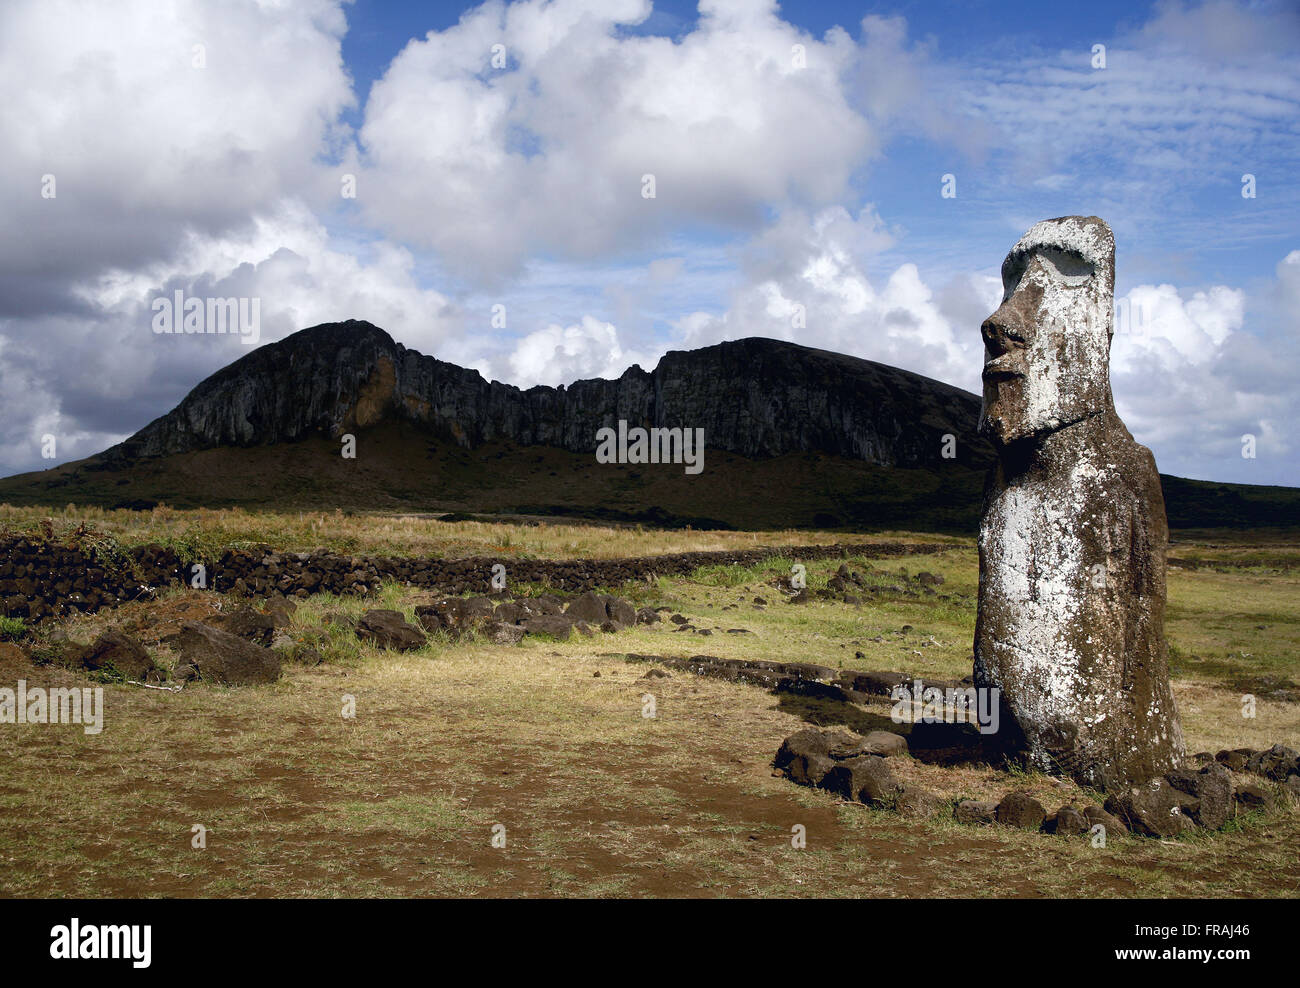 Detail of Moai on Easter Island - the volcano background - Stock Image